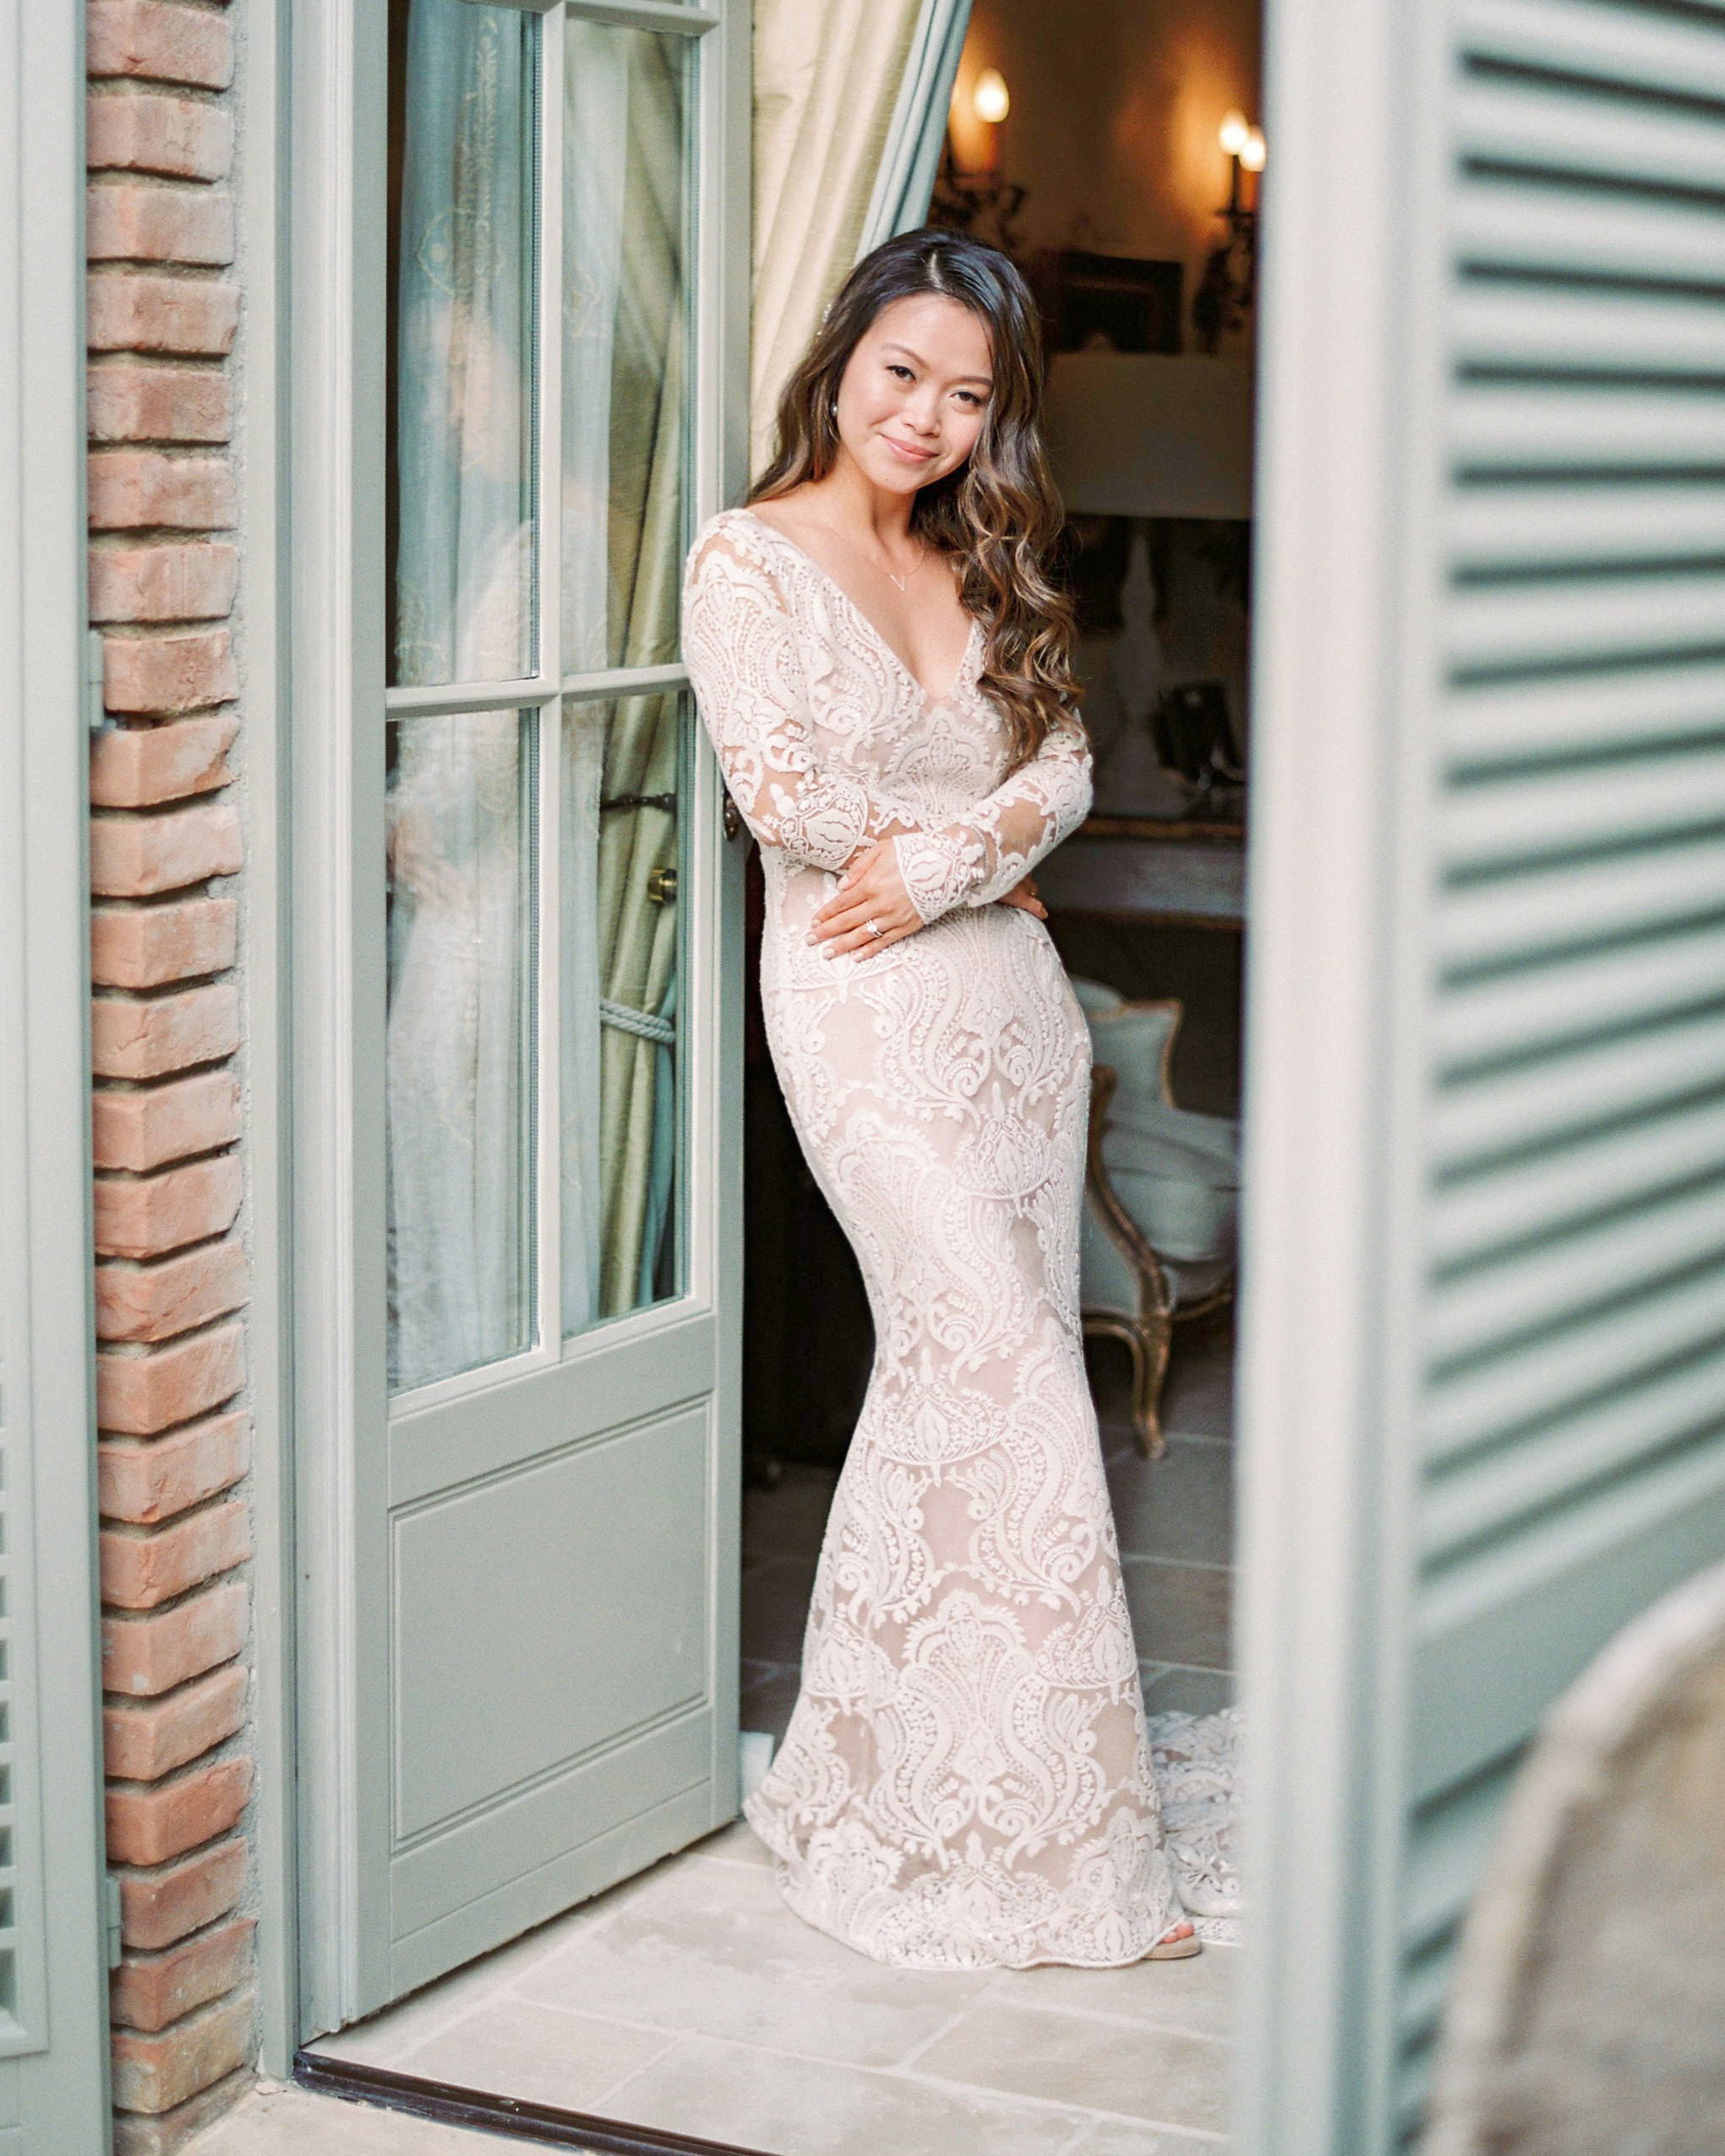 How to Wear a Long-Sleeved Wedding Dress in the Summer